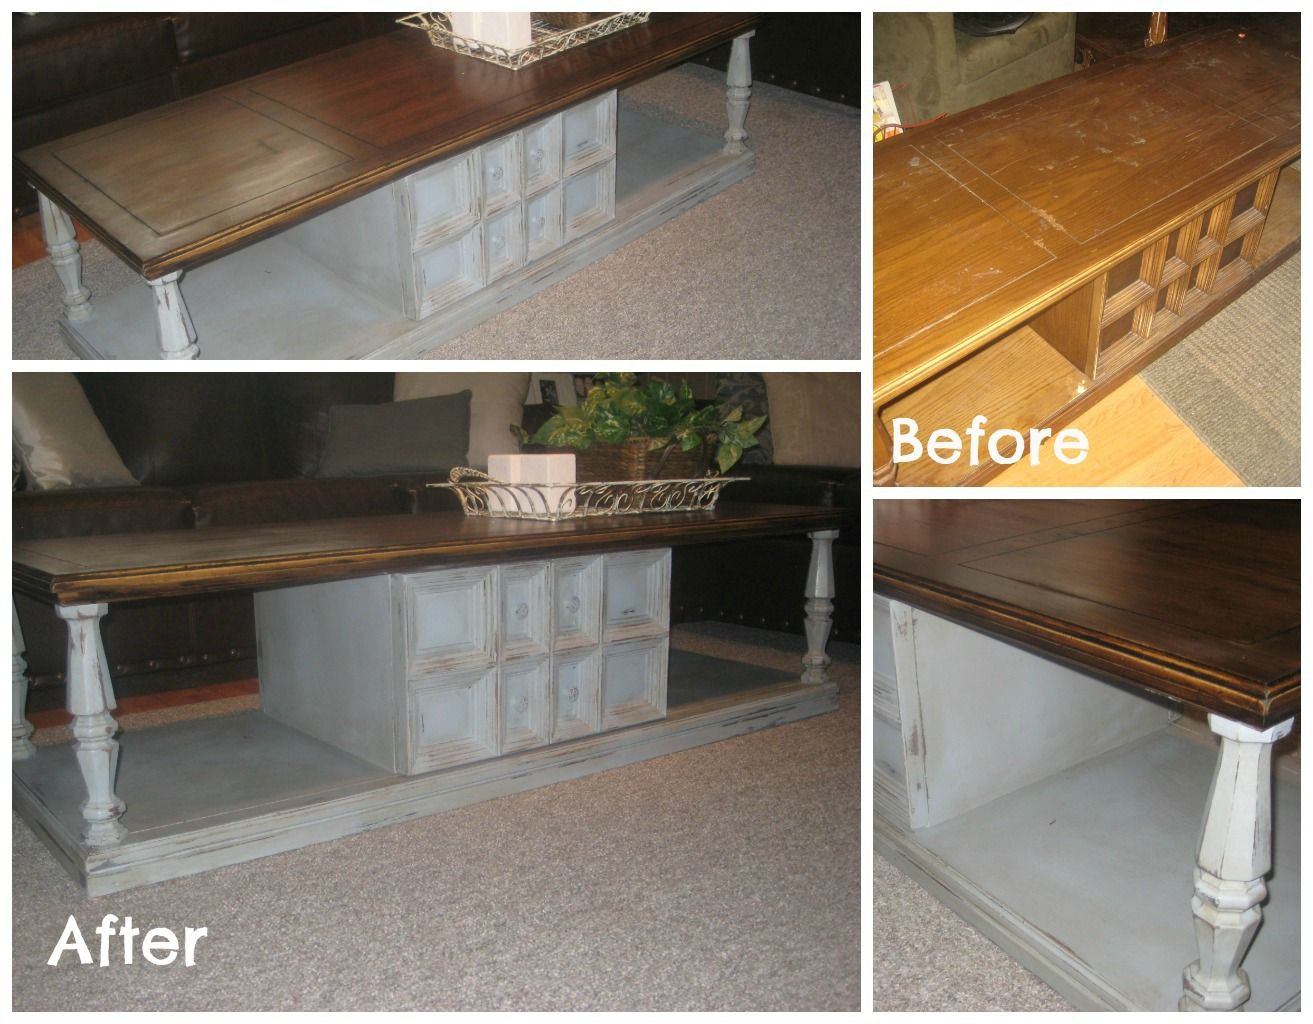 70 S Coffee Table Redo I Have The Identical One Was Thinking I